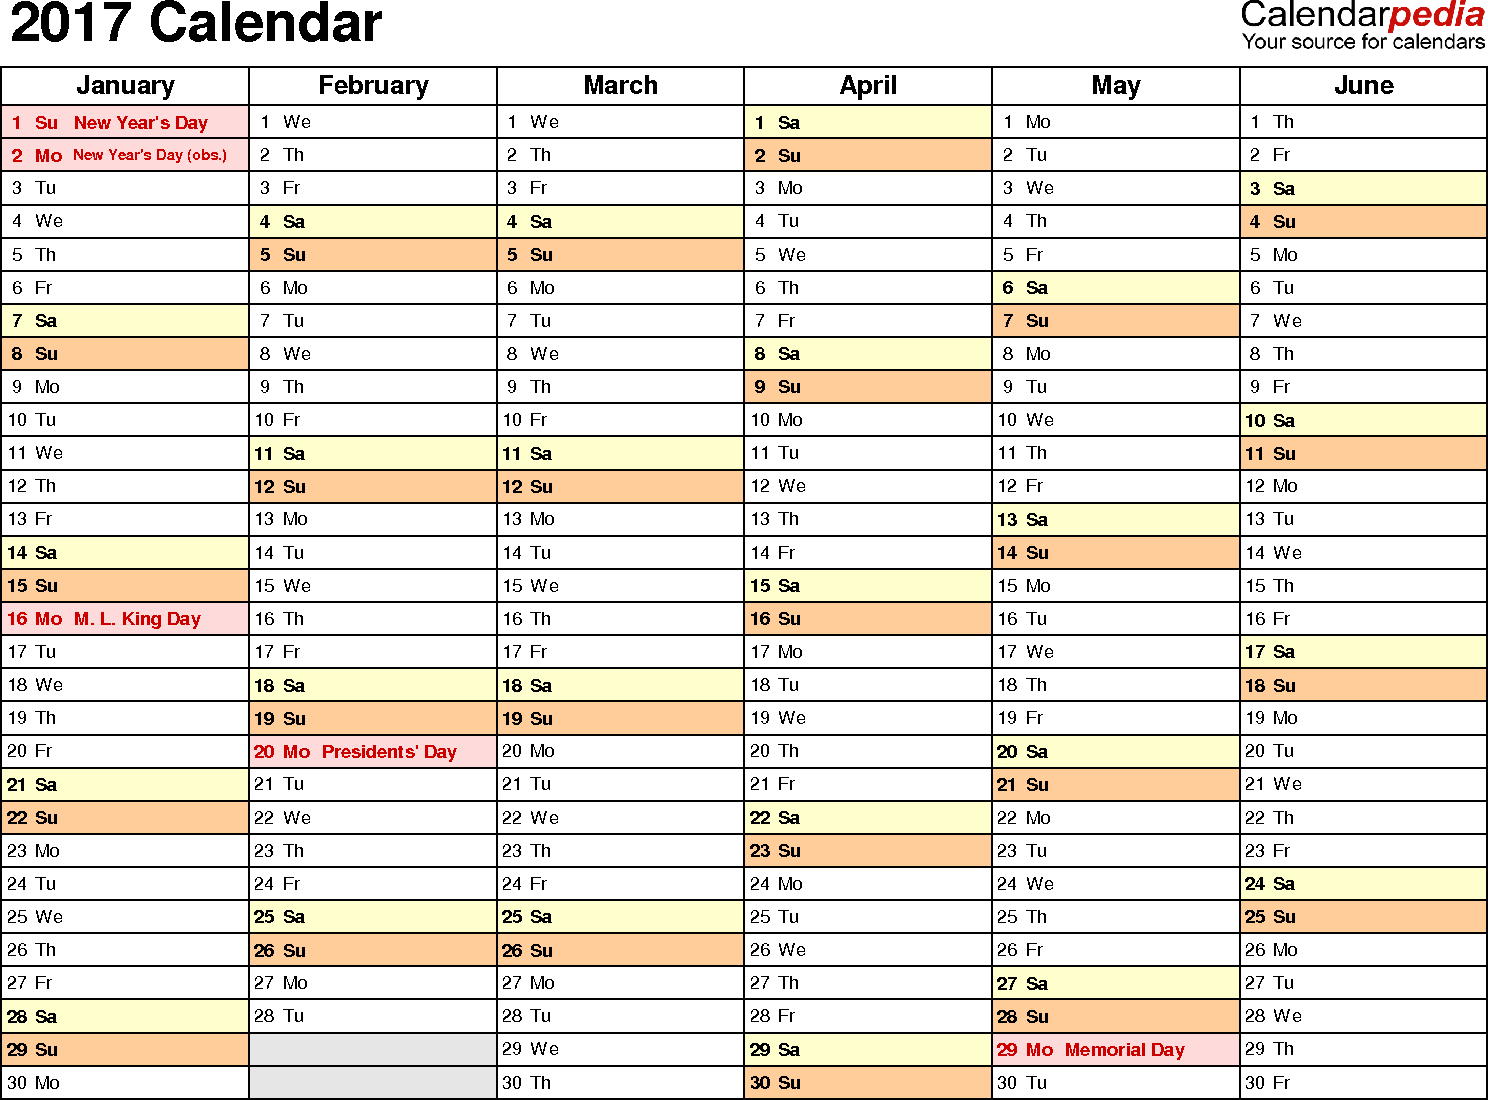 Ediblewildsus  Personable  Calendar  Download  Free Printable Excel Templates Xls With Extraordinary Template   Calendar For Excel Months Horizontally  Pages Landscape Orientation With Extraordinary Excel National Bank Also Calendar Download Excel In Addition Developer In Excel  And Excel Pyramid Chart As Well As How To Make A Bar Graph Excel Additionally Round To Nearest Thousand In Excel From Calendarpediacom With Ediblewildsus  Extraordinary  Calendar  Download  Free Printable Excel Templates Xls With Extraordinary Template   Calendar For Excel Months Horizontally  Pages Landscape Orientation And Personable Excel National Bank Also Calendar Download Excel In Addition Developer In Excel  From Calendarpediacom